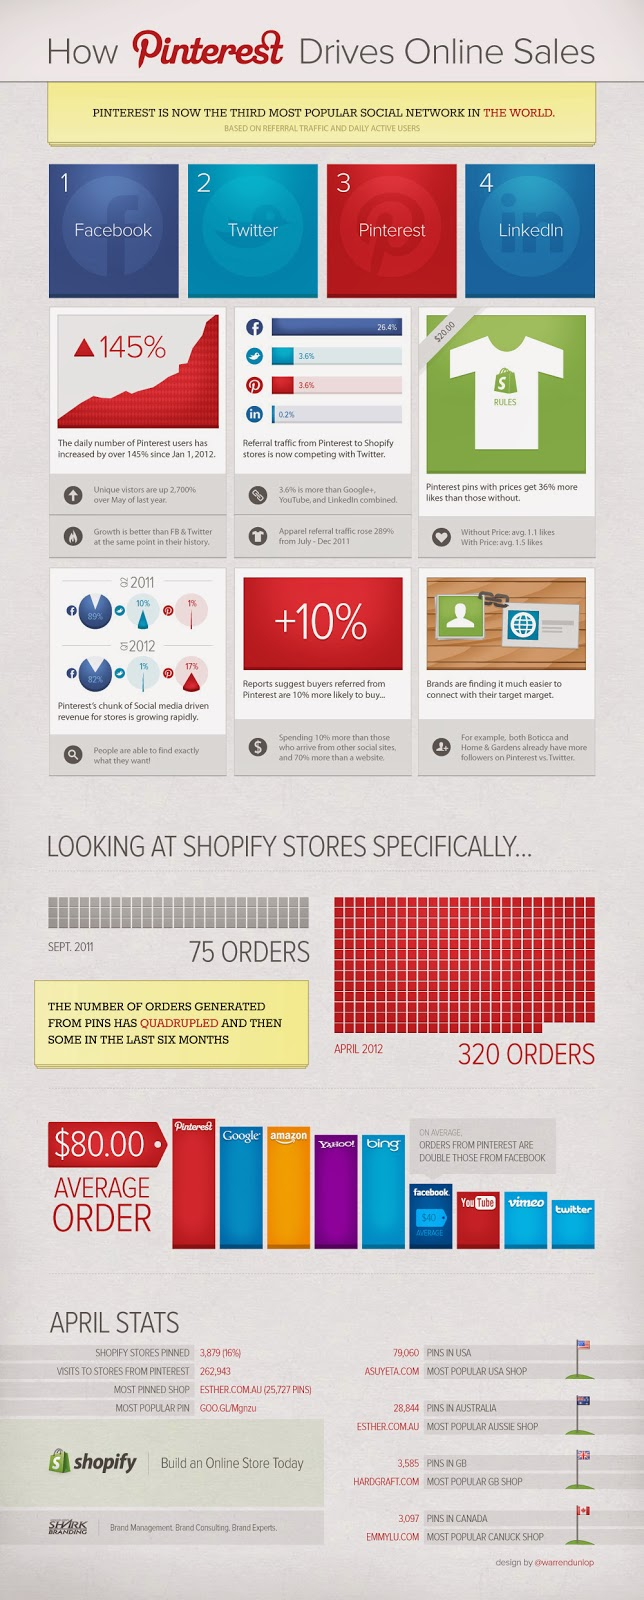 Pinterest among no 1 social site driving more ecommerce traffic